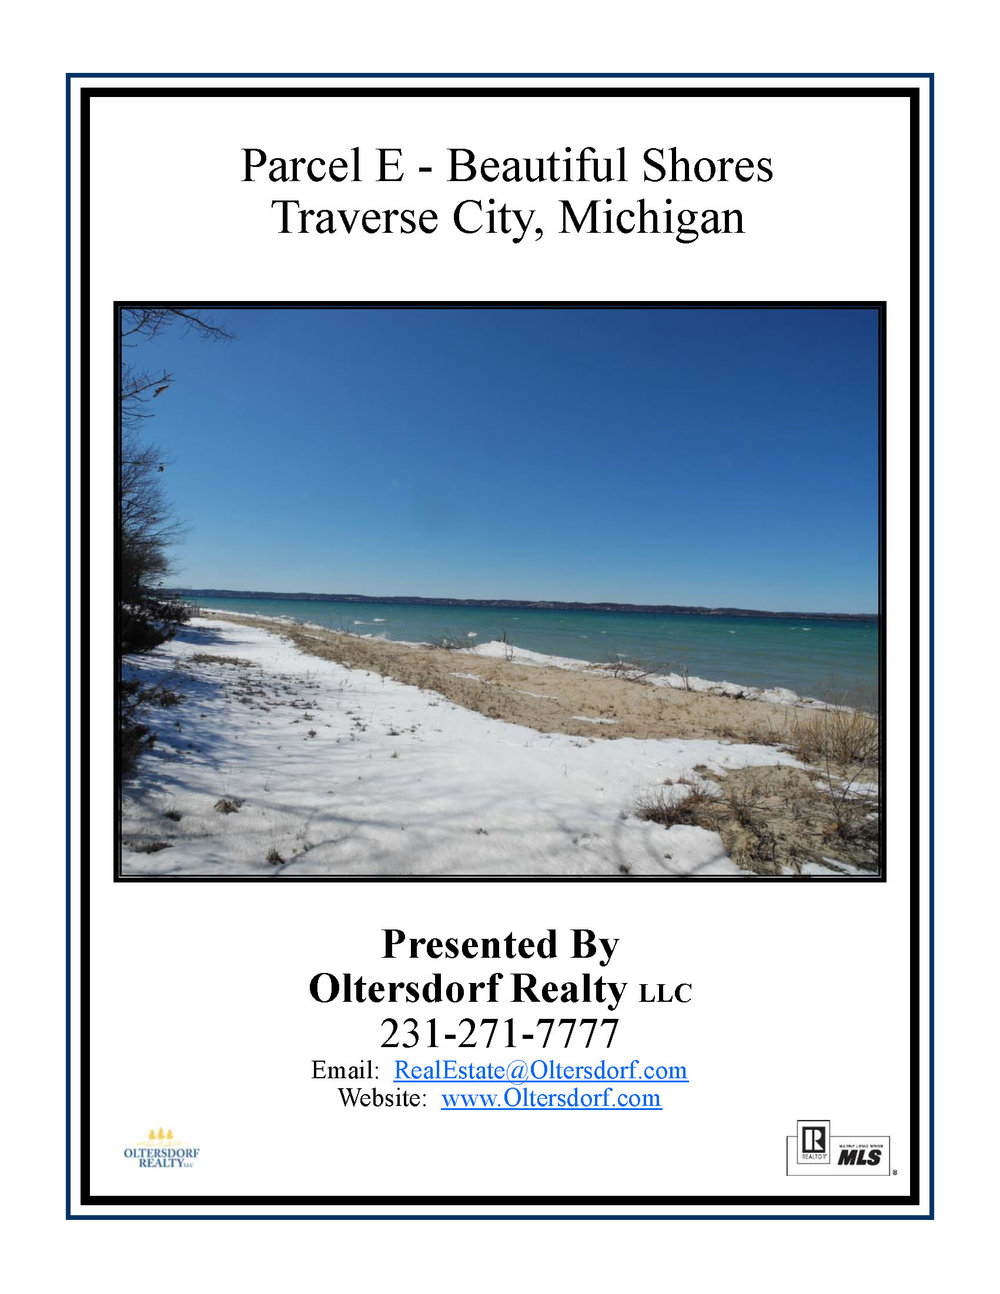 Parcel E - Beautiful Shores, Traverse City - Marketing Packet For Sale by Oltersdorf Realty LLC_Page_01.jpg